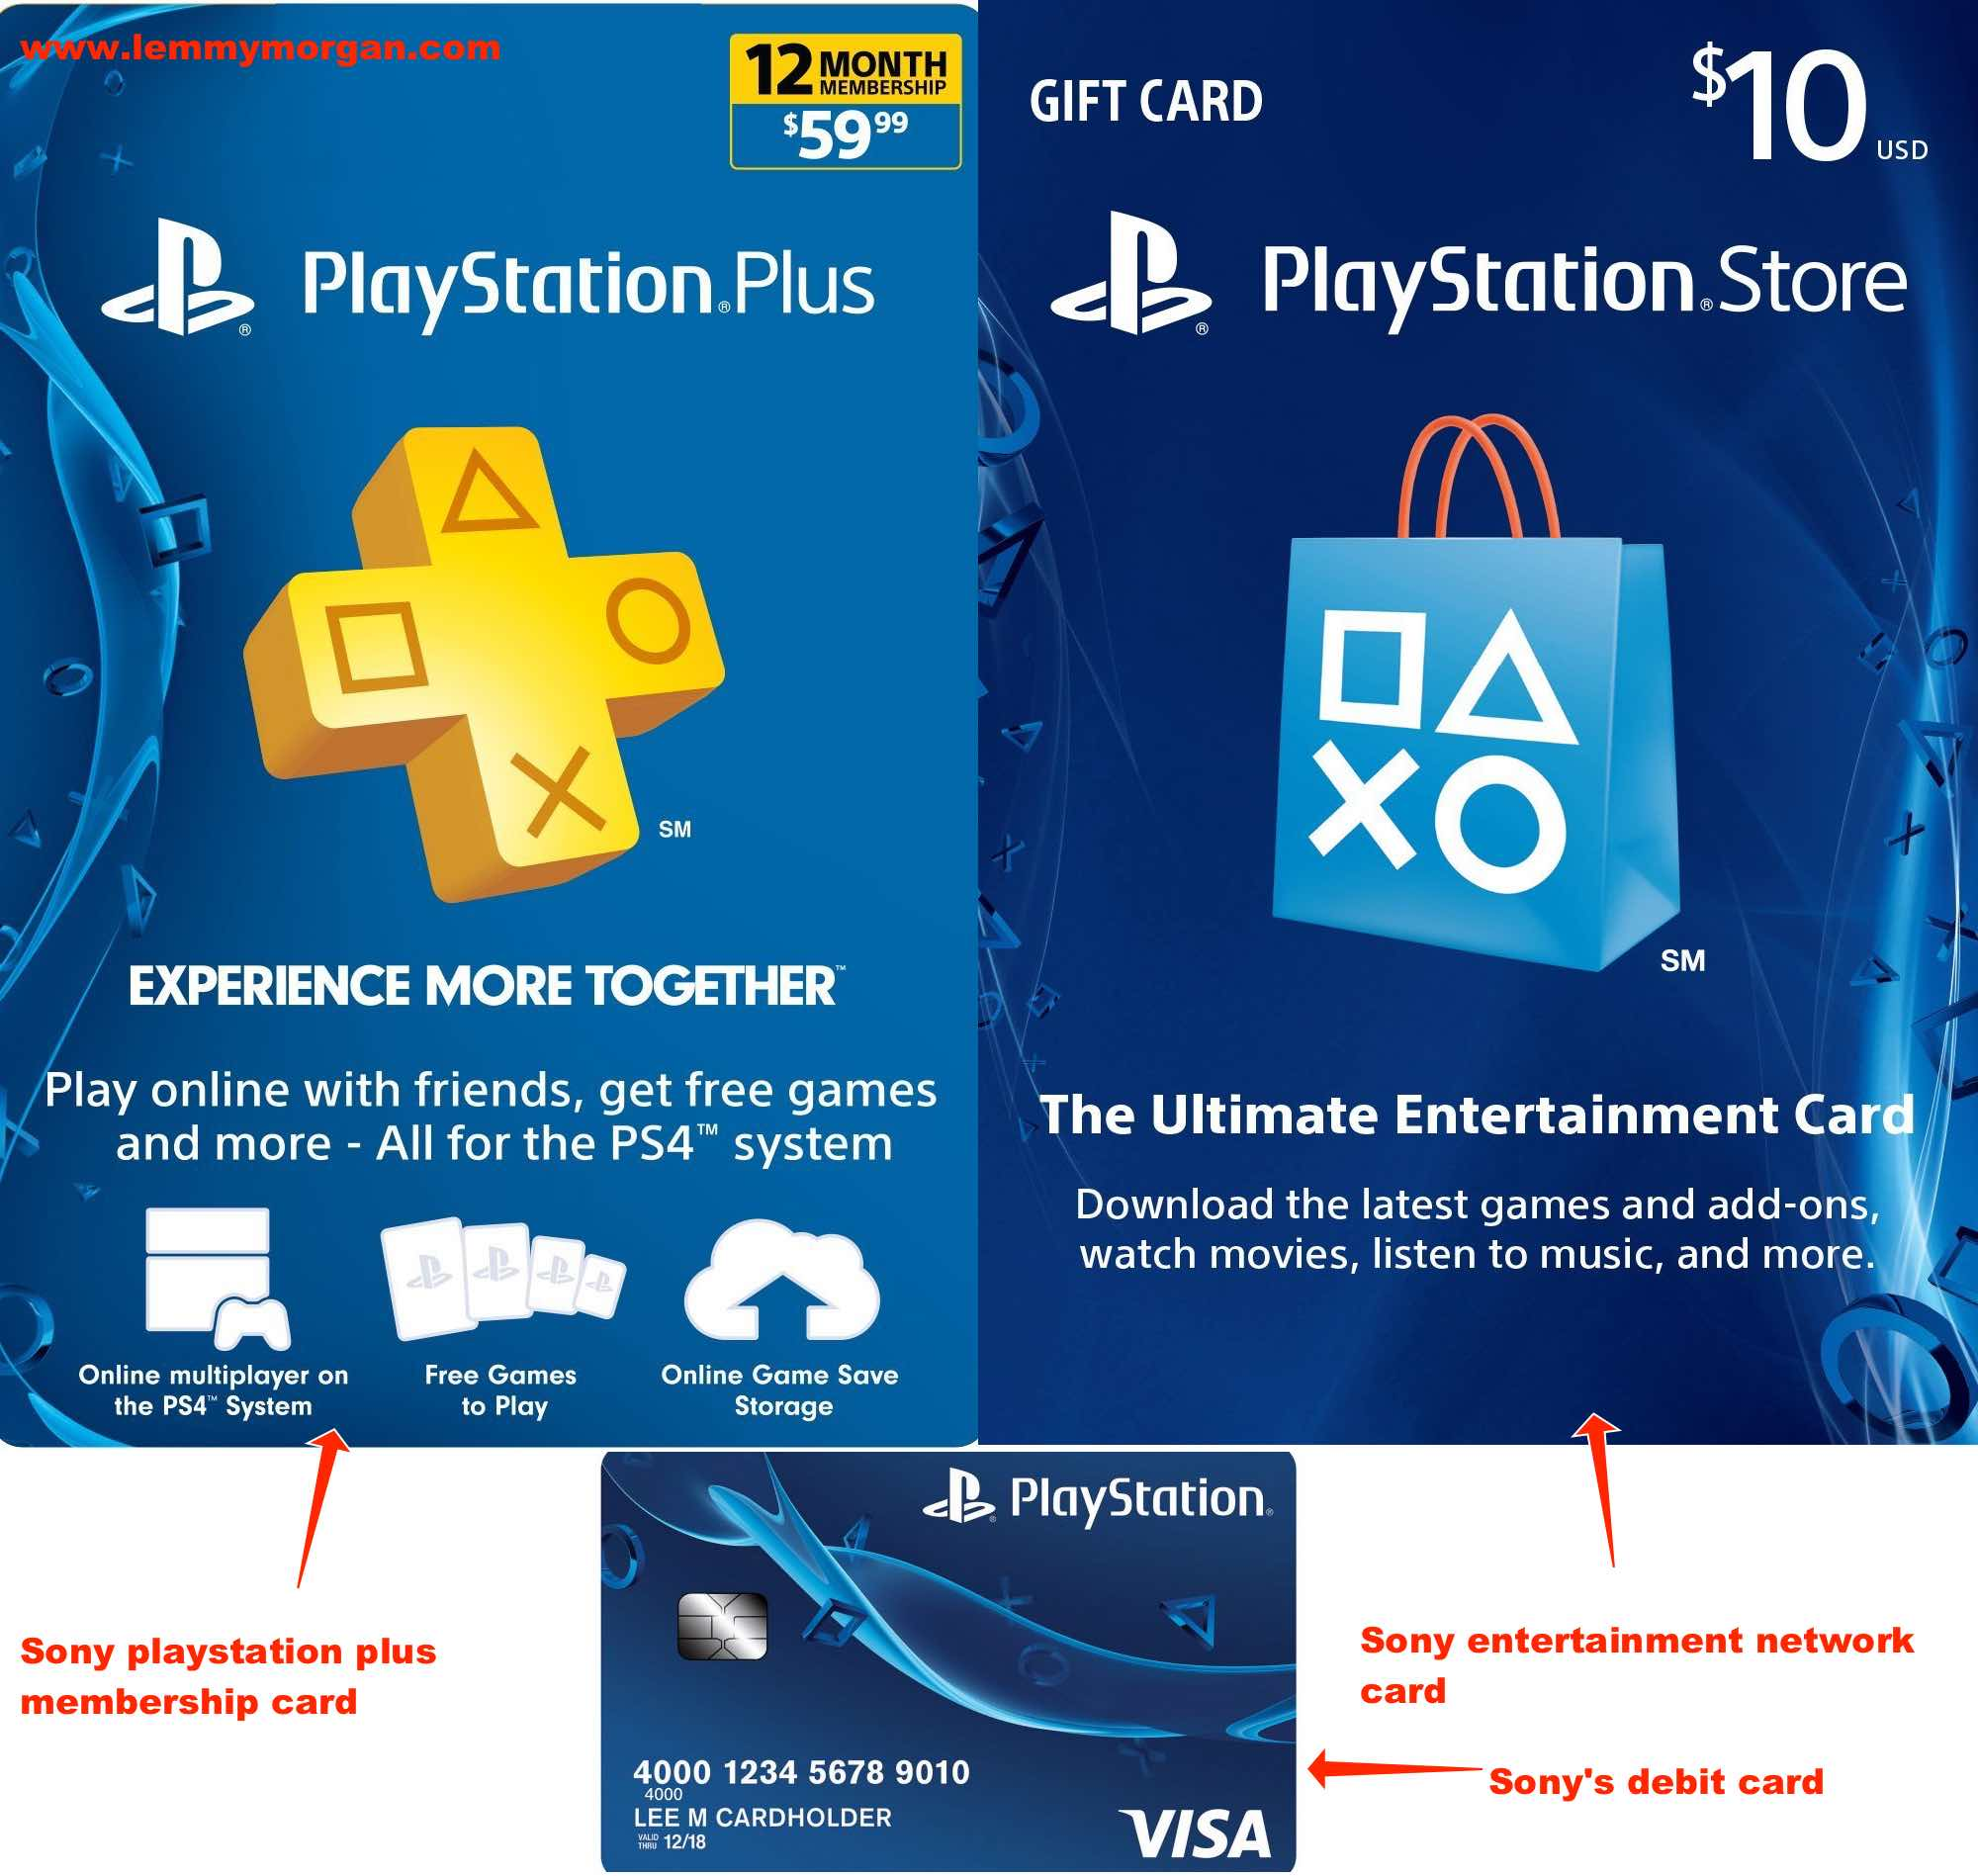 [Tut] How to become a playstation plus member or load a SEN card from any country